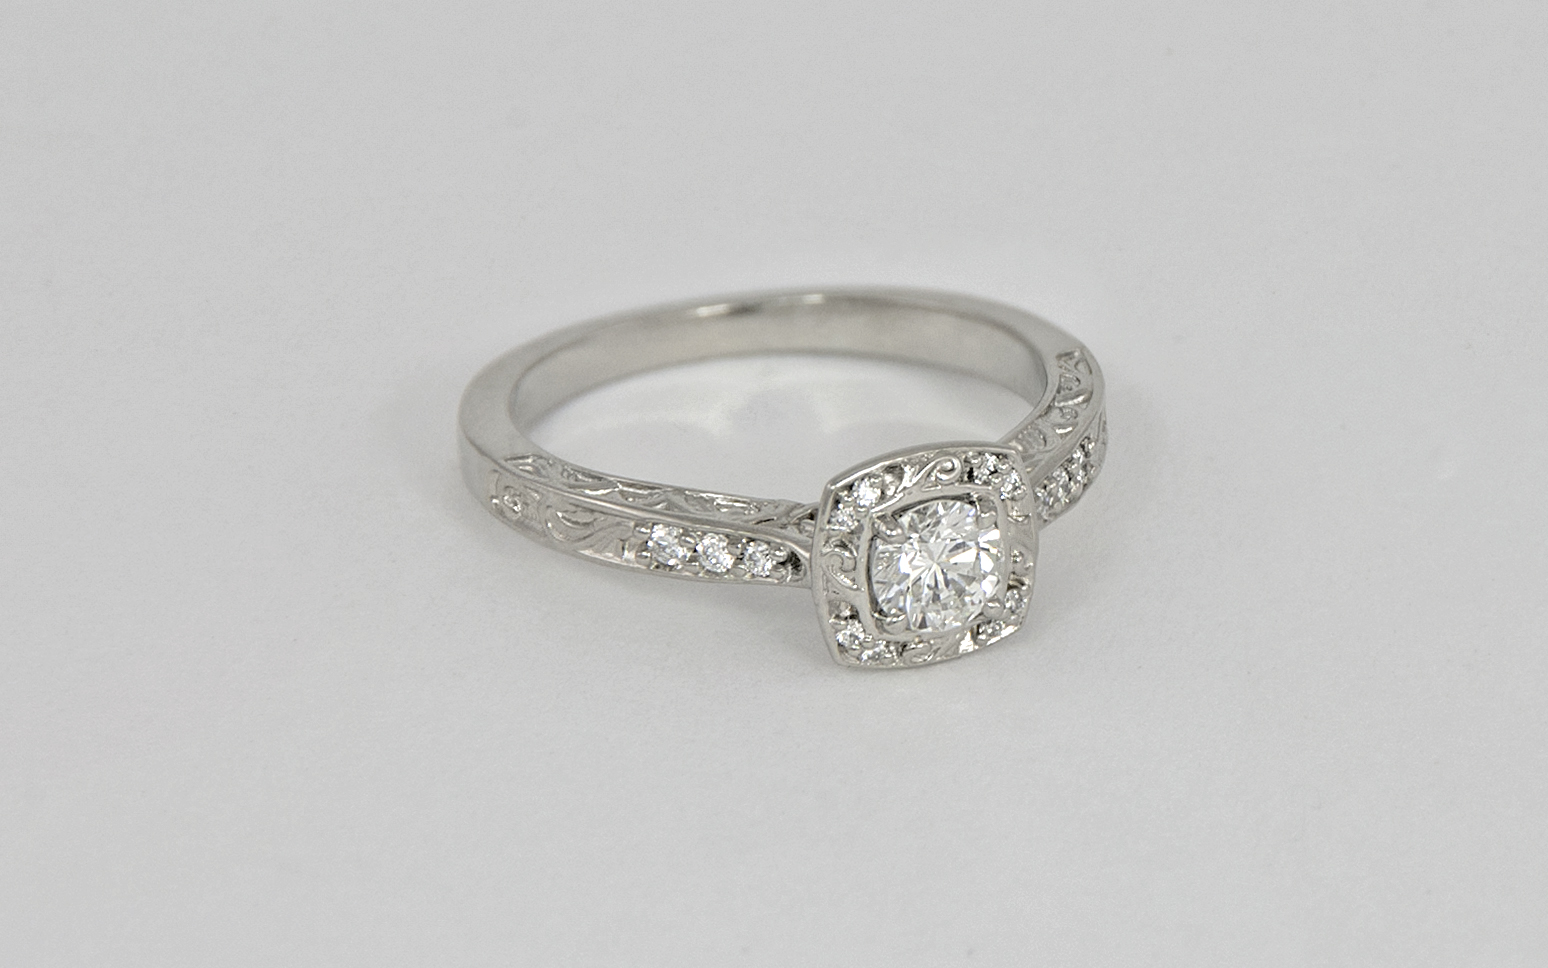 14KW Scroll and Diamond Accented Engagement Ring